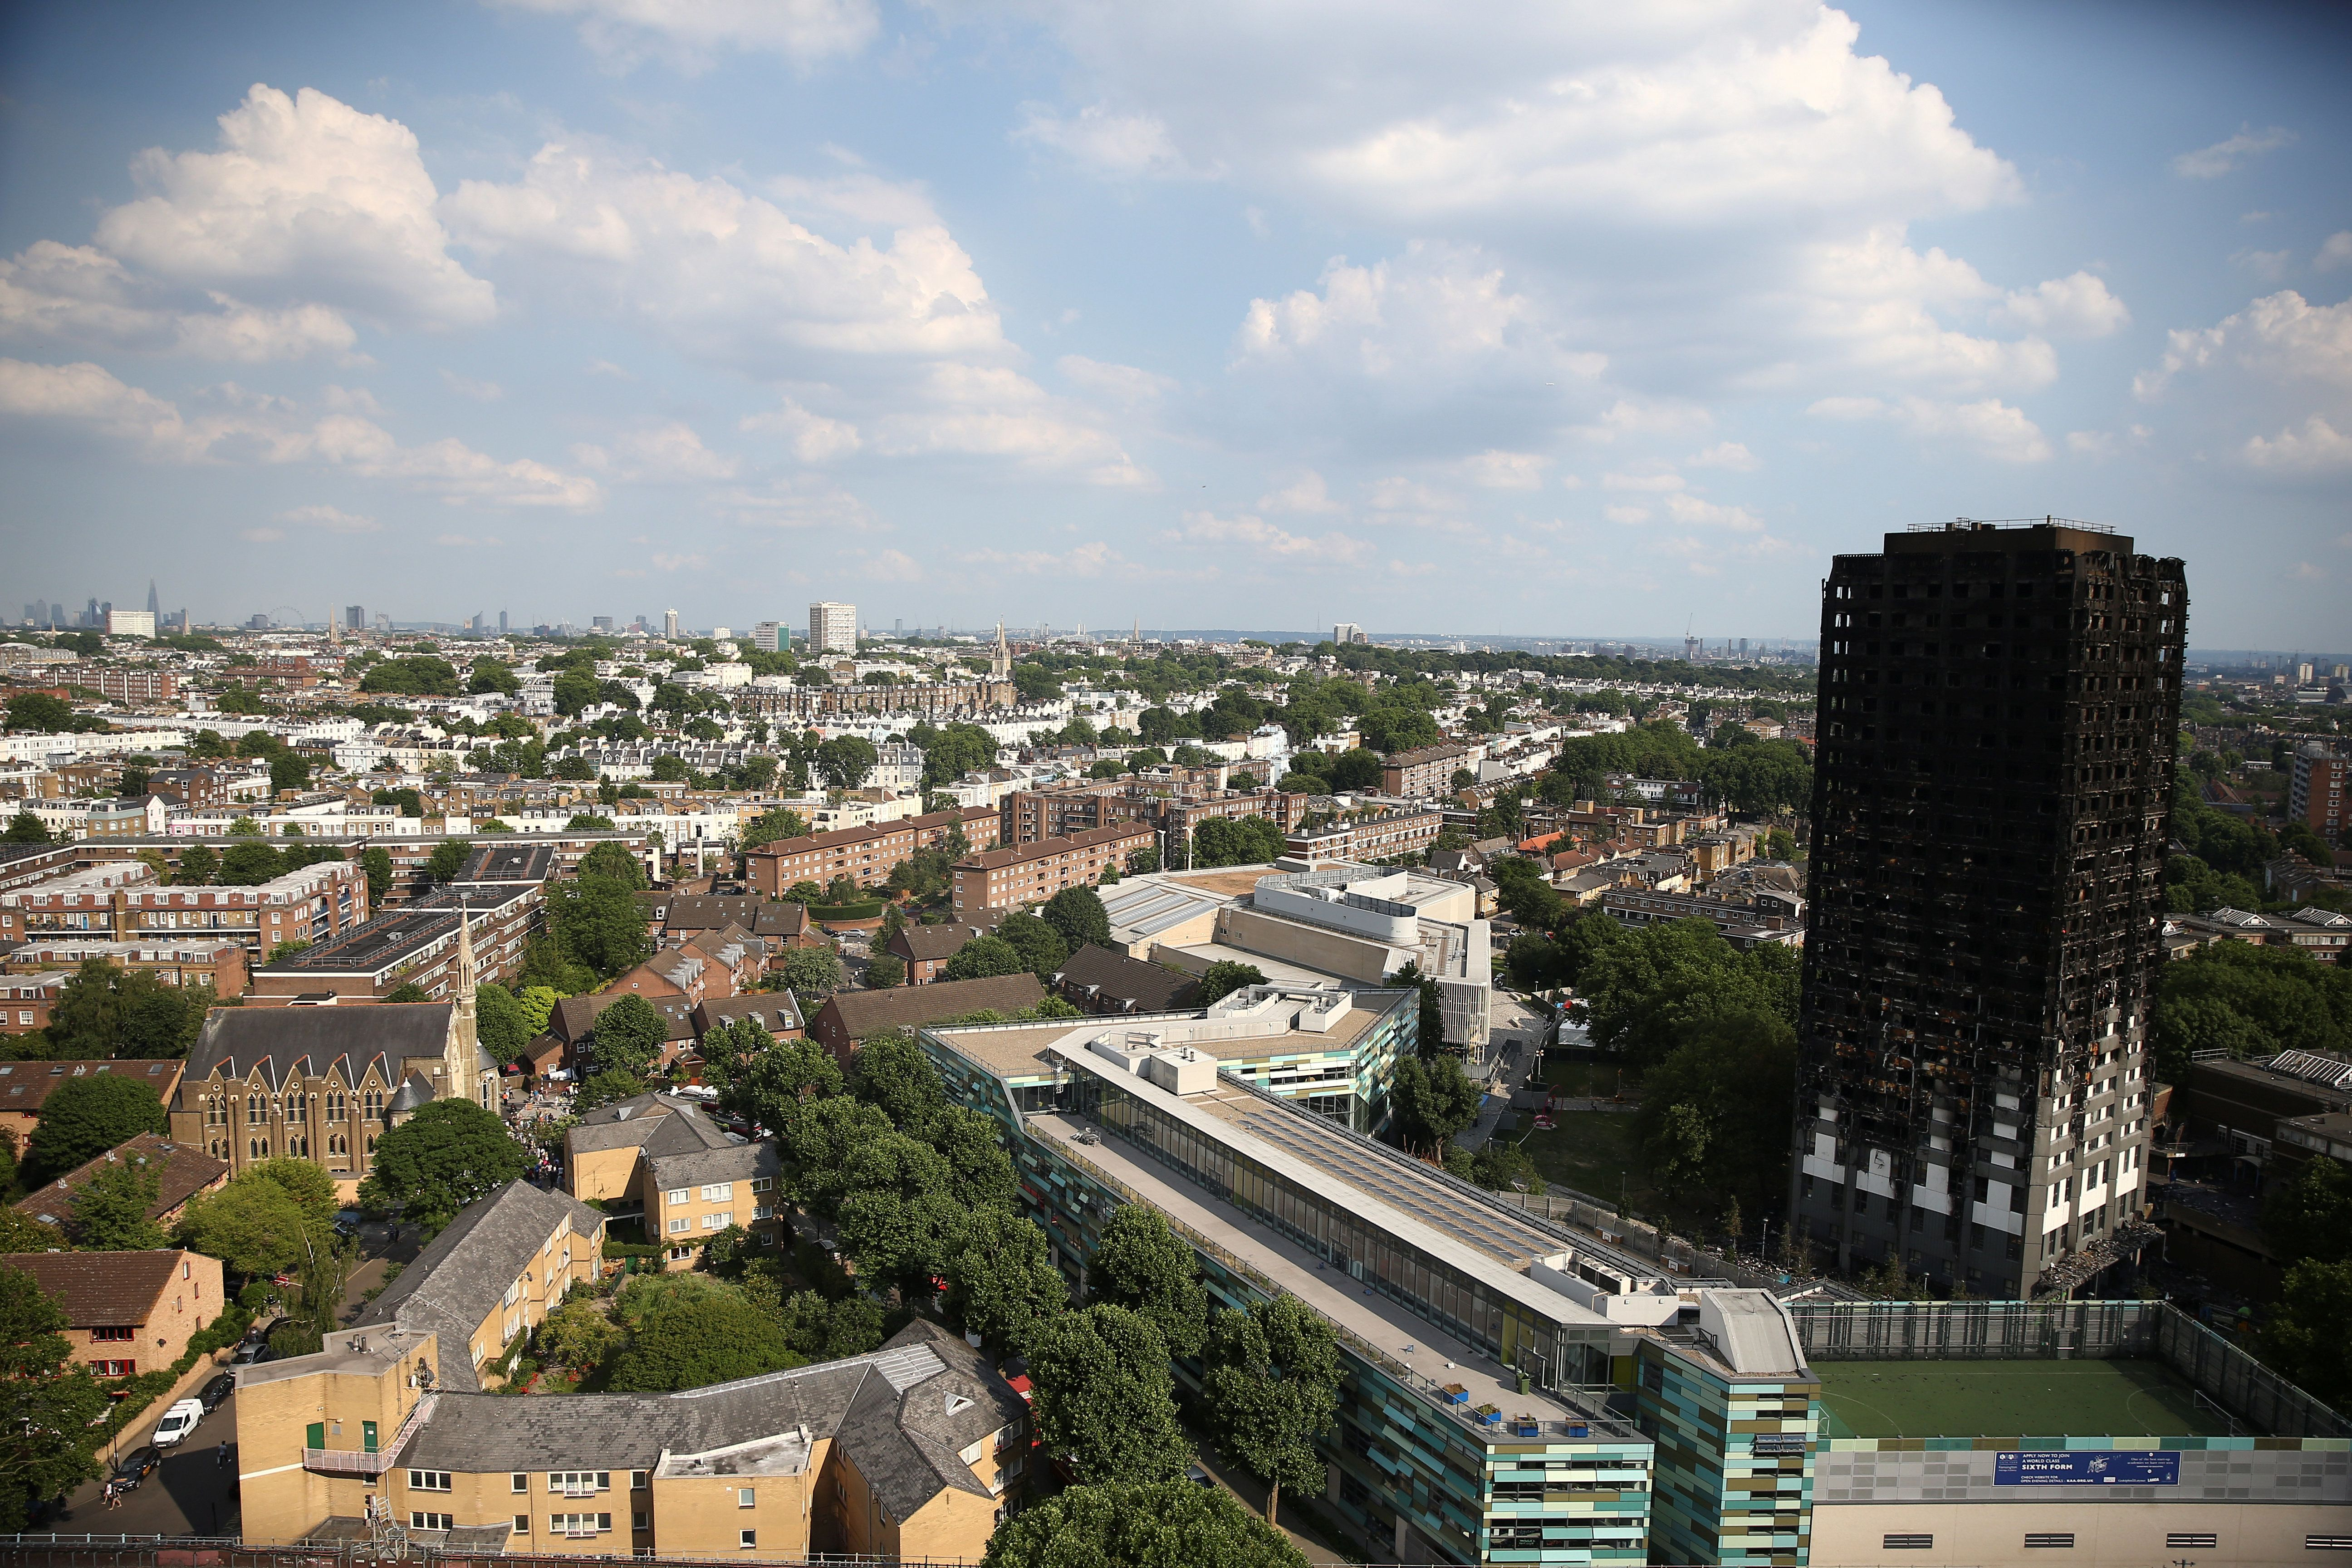 Fire Experts Say Safety Checks Need 'Urgent Review' After Grenfell Blaze